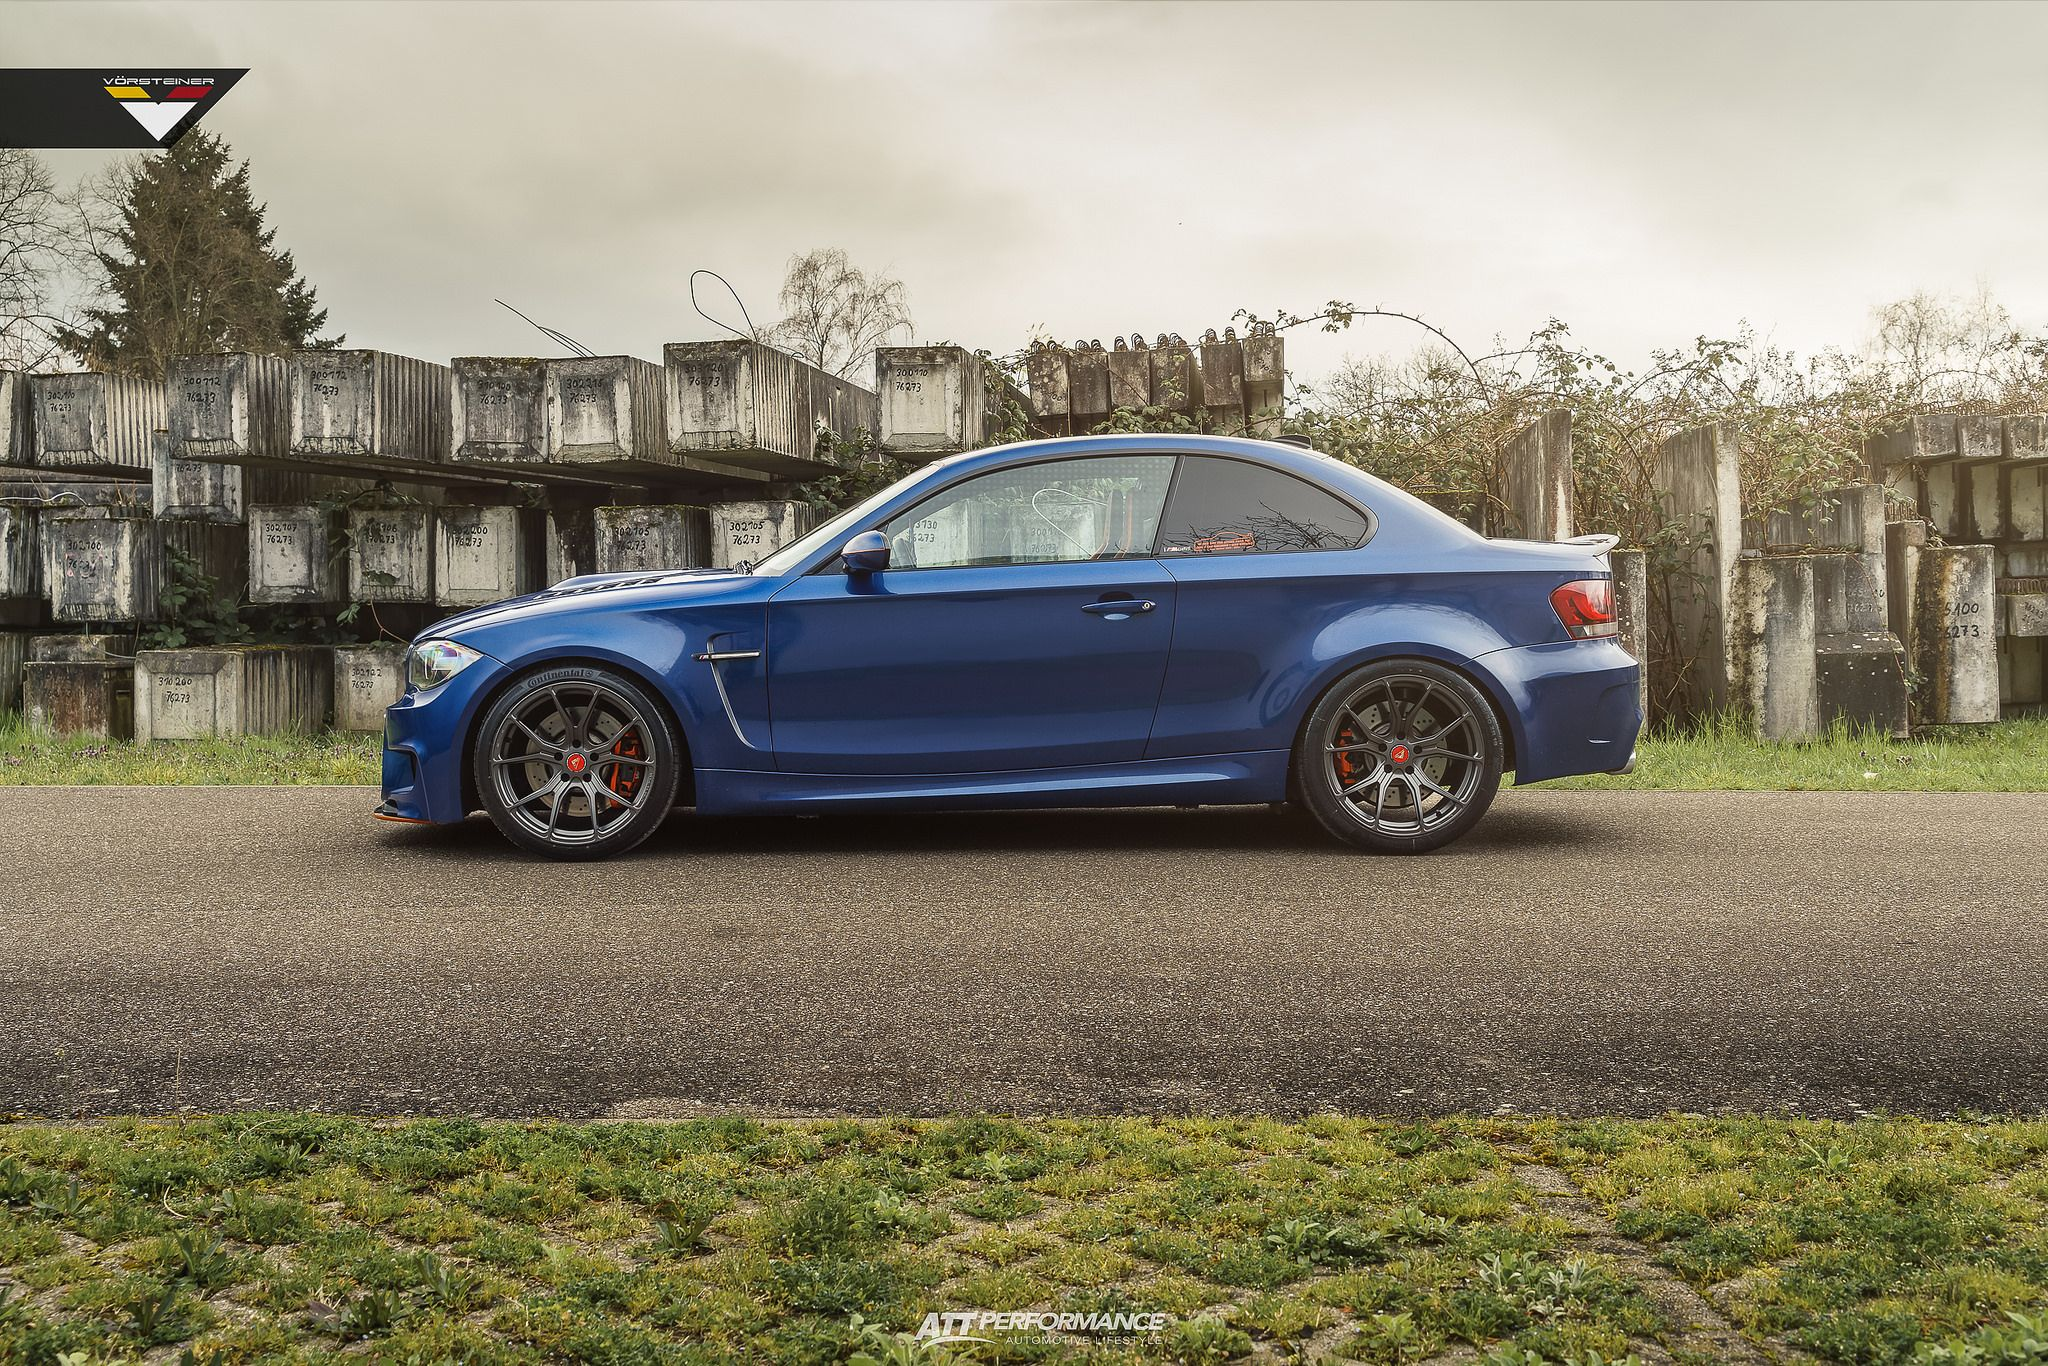 Bmw E82 1m Coupe Vorsteiner Provocative Eyes Tuning Hot